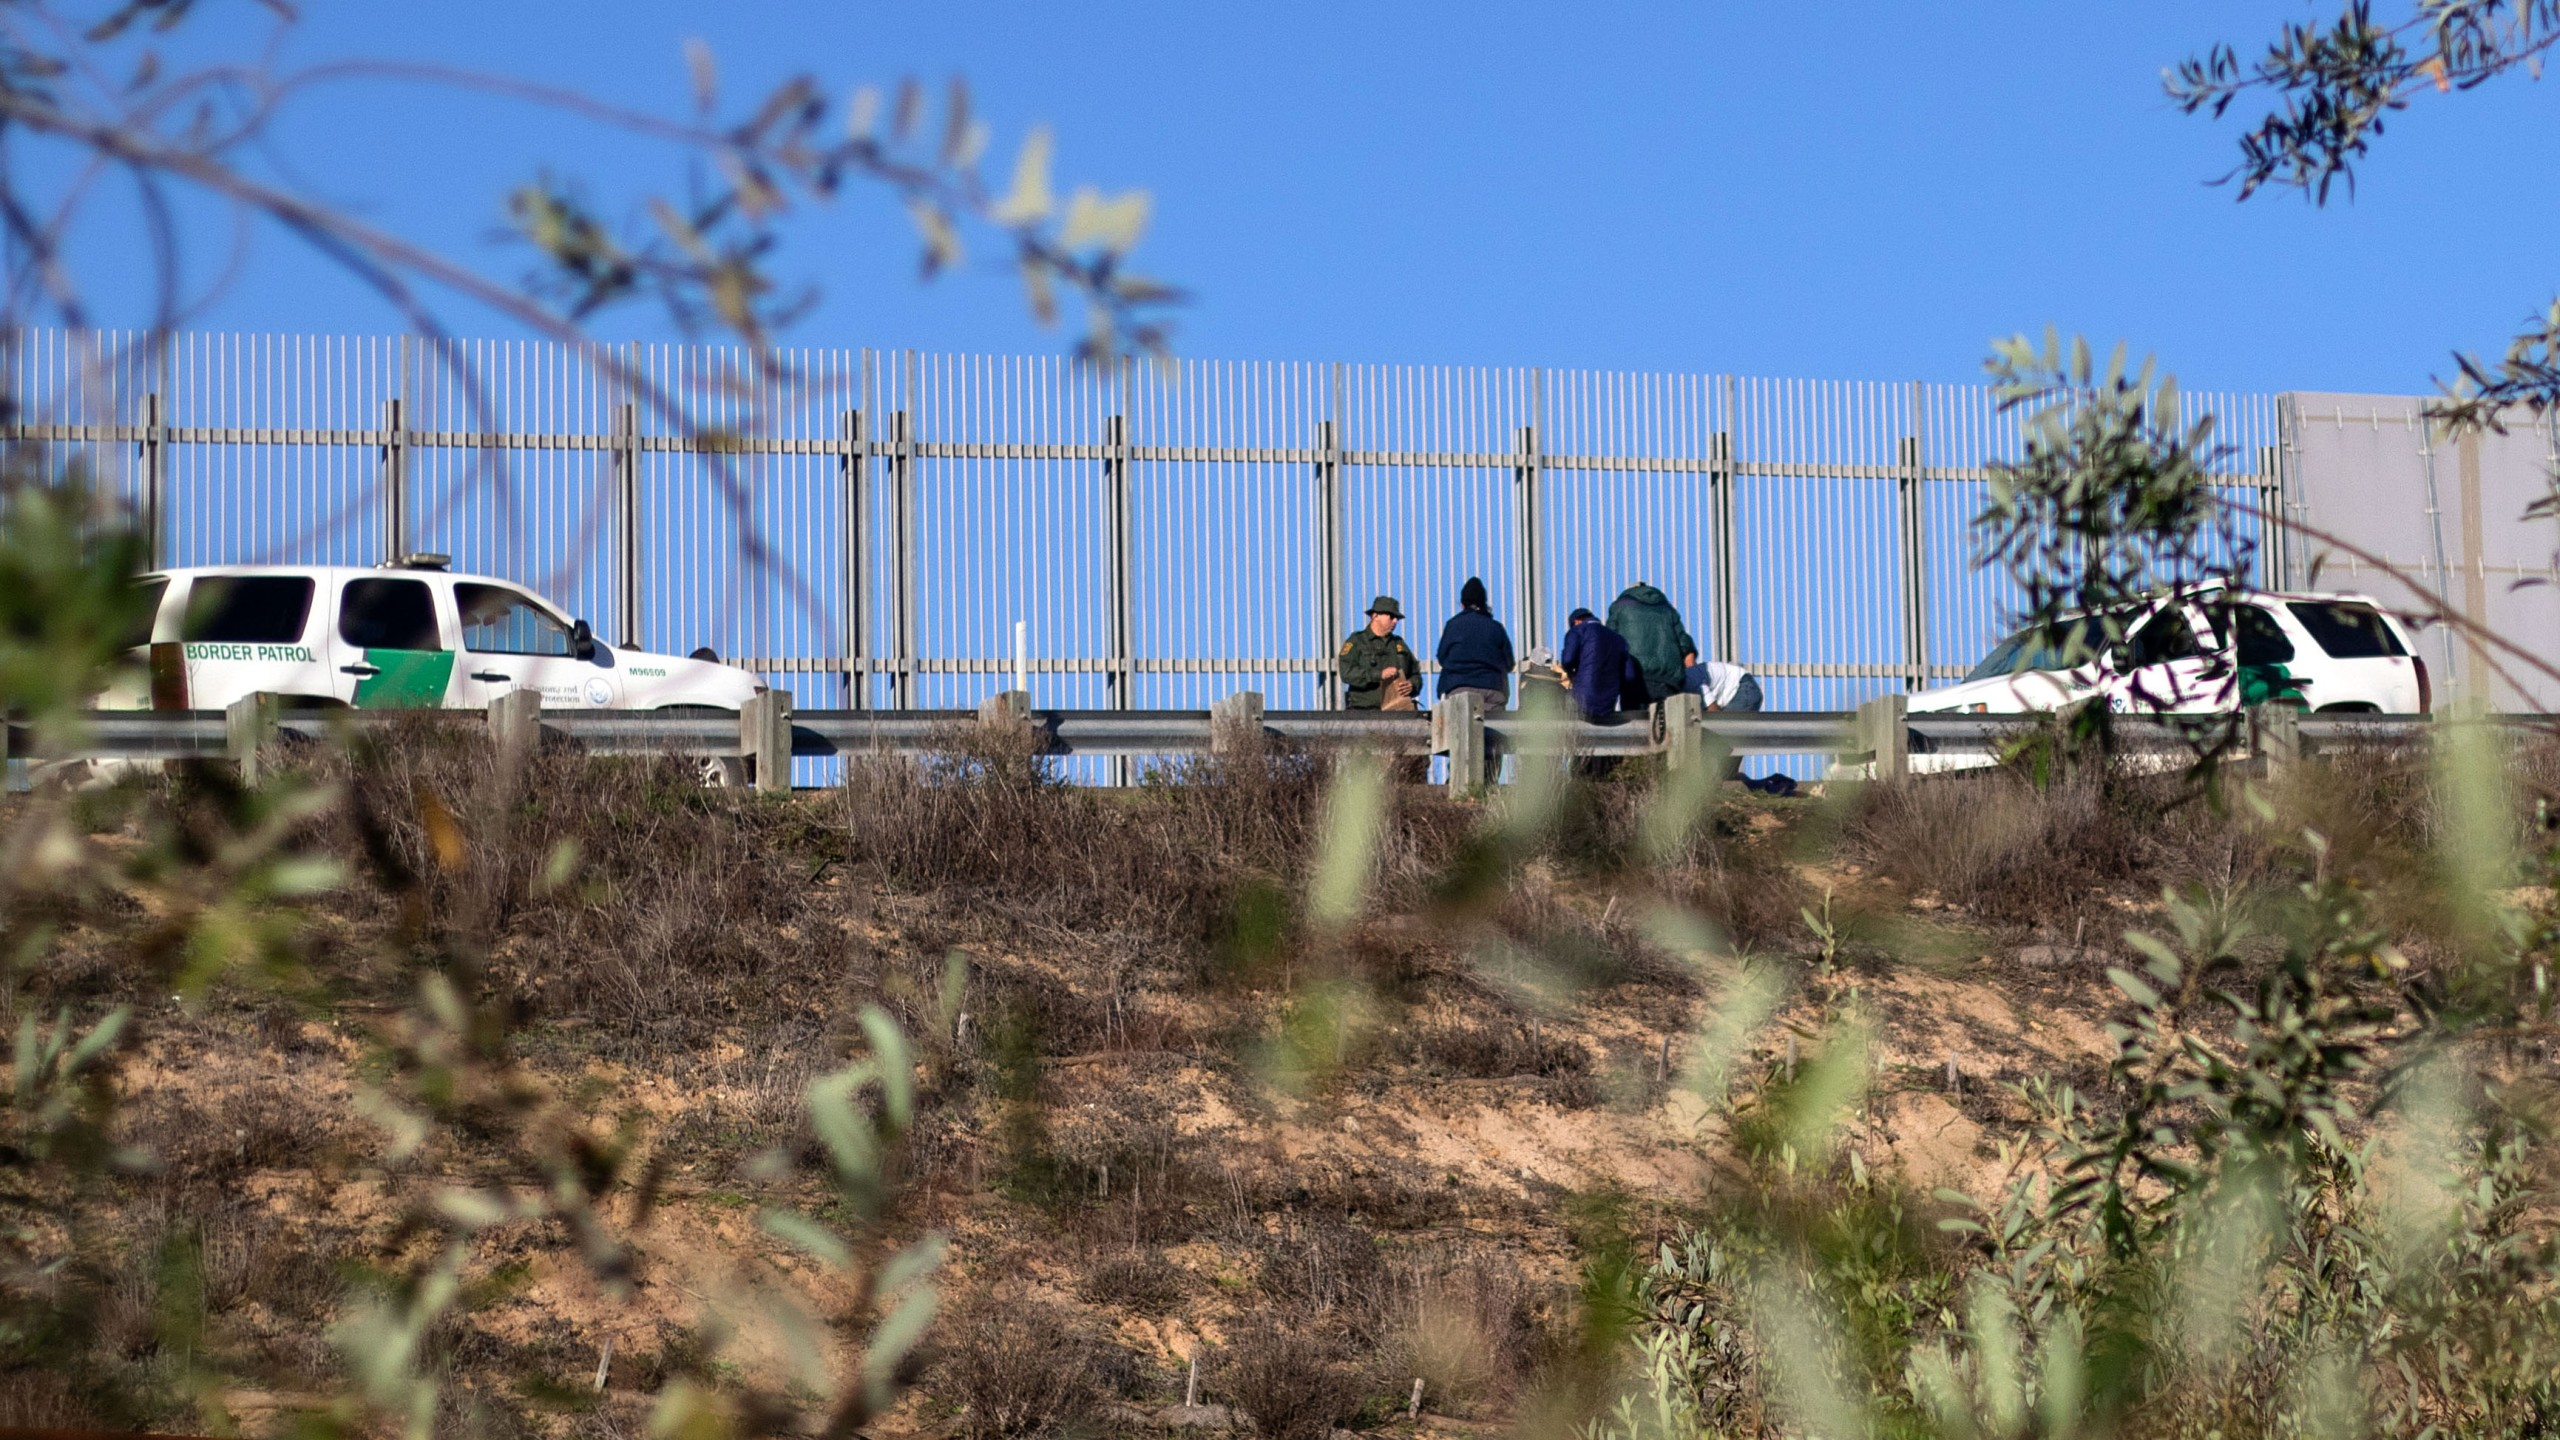 A group of migrants traveling in the Central American caravan are taken in custody by the U.S. Border Patrol after crossing the border fence into San Diego County, as seen from Playas de Tijuana, Mexico, on Dec. 12, 2018. (Credit: Guillermo Arias / AFP / Getty Images)